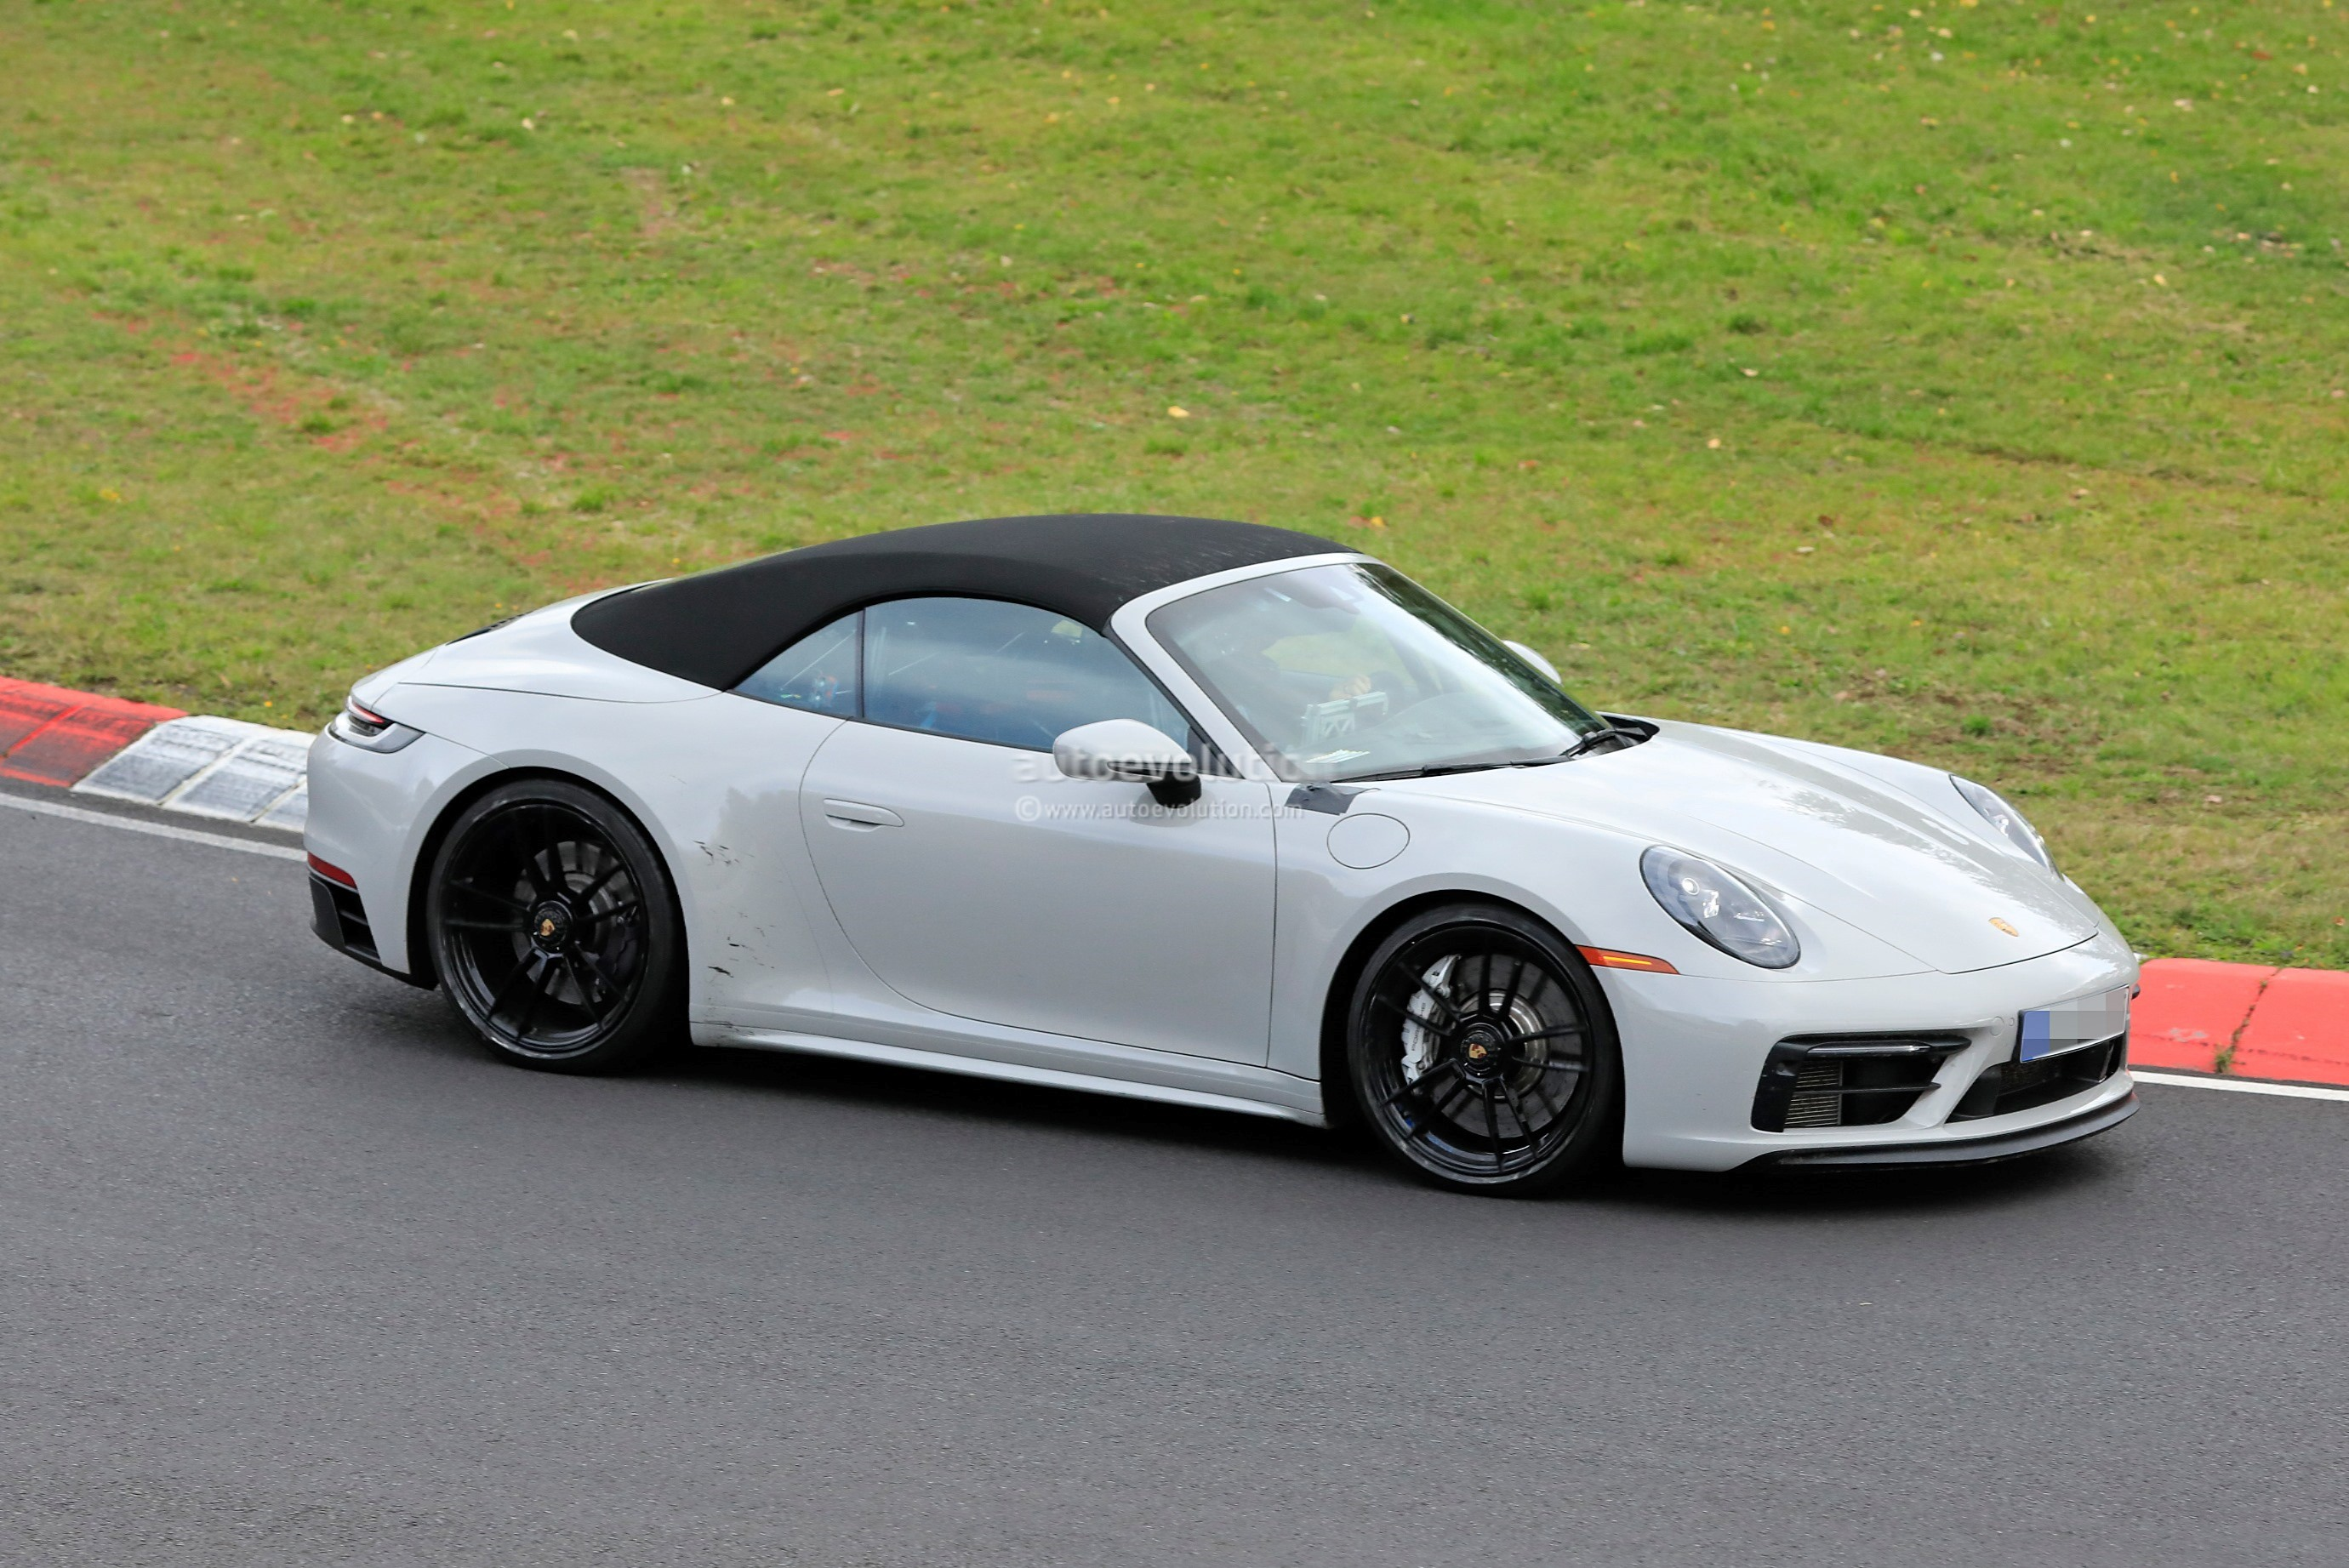 Uncamouflaged 992 Porsche 911 Gts Cabriolet Spied Lapping The Nurburgring Autoevolution